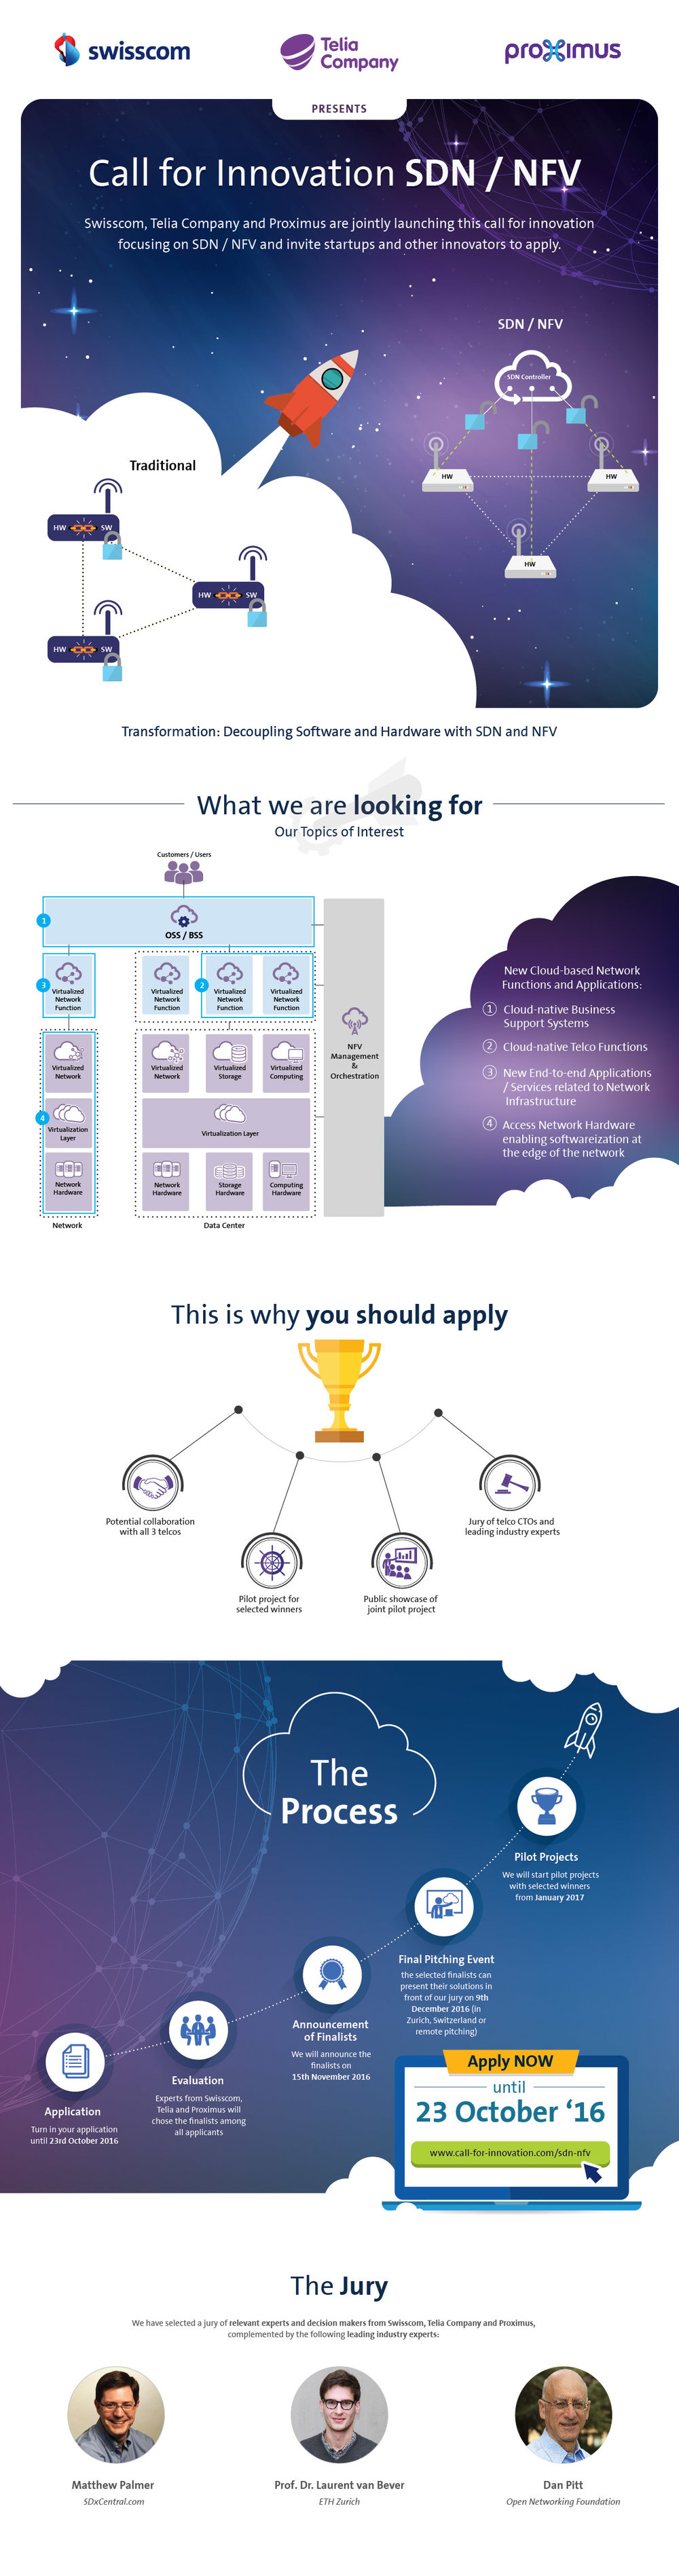 sdn_nfv_call_for_innovation_infographic